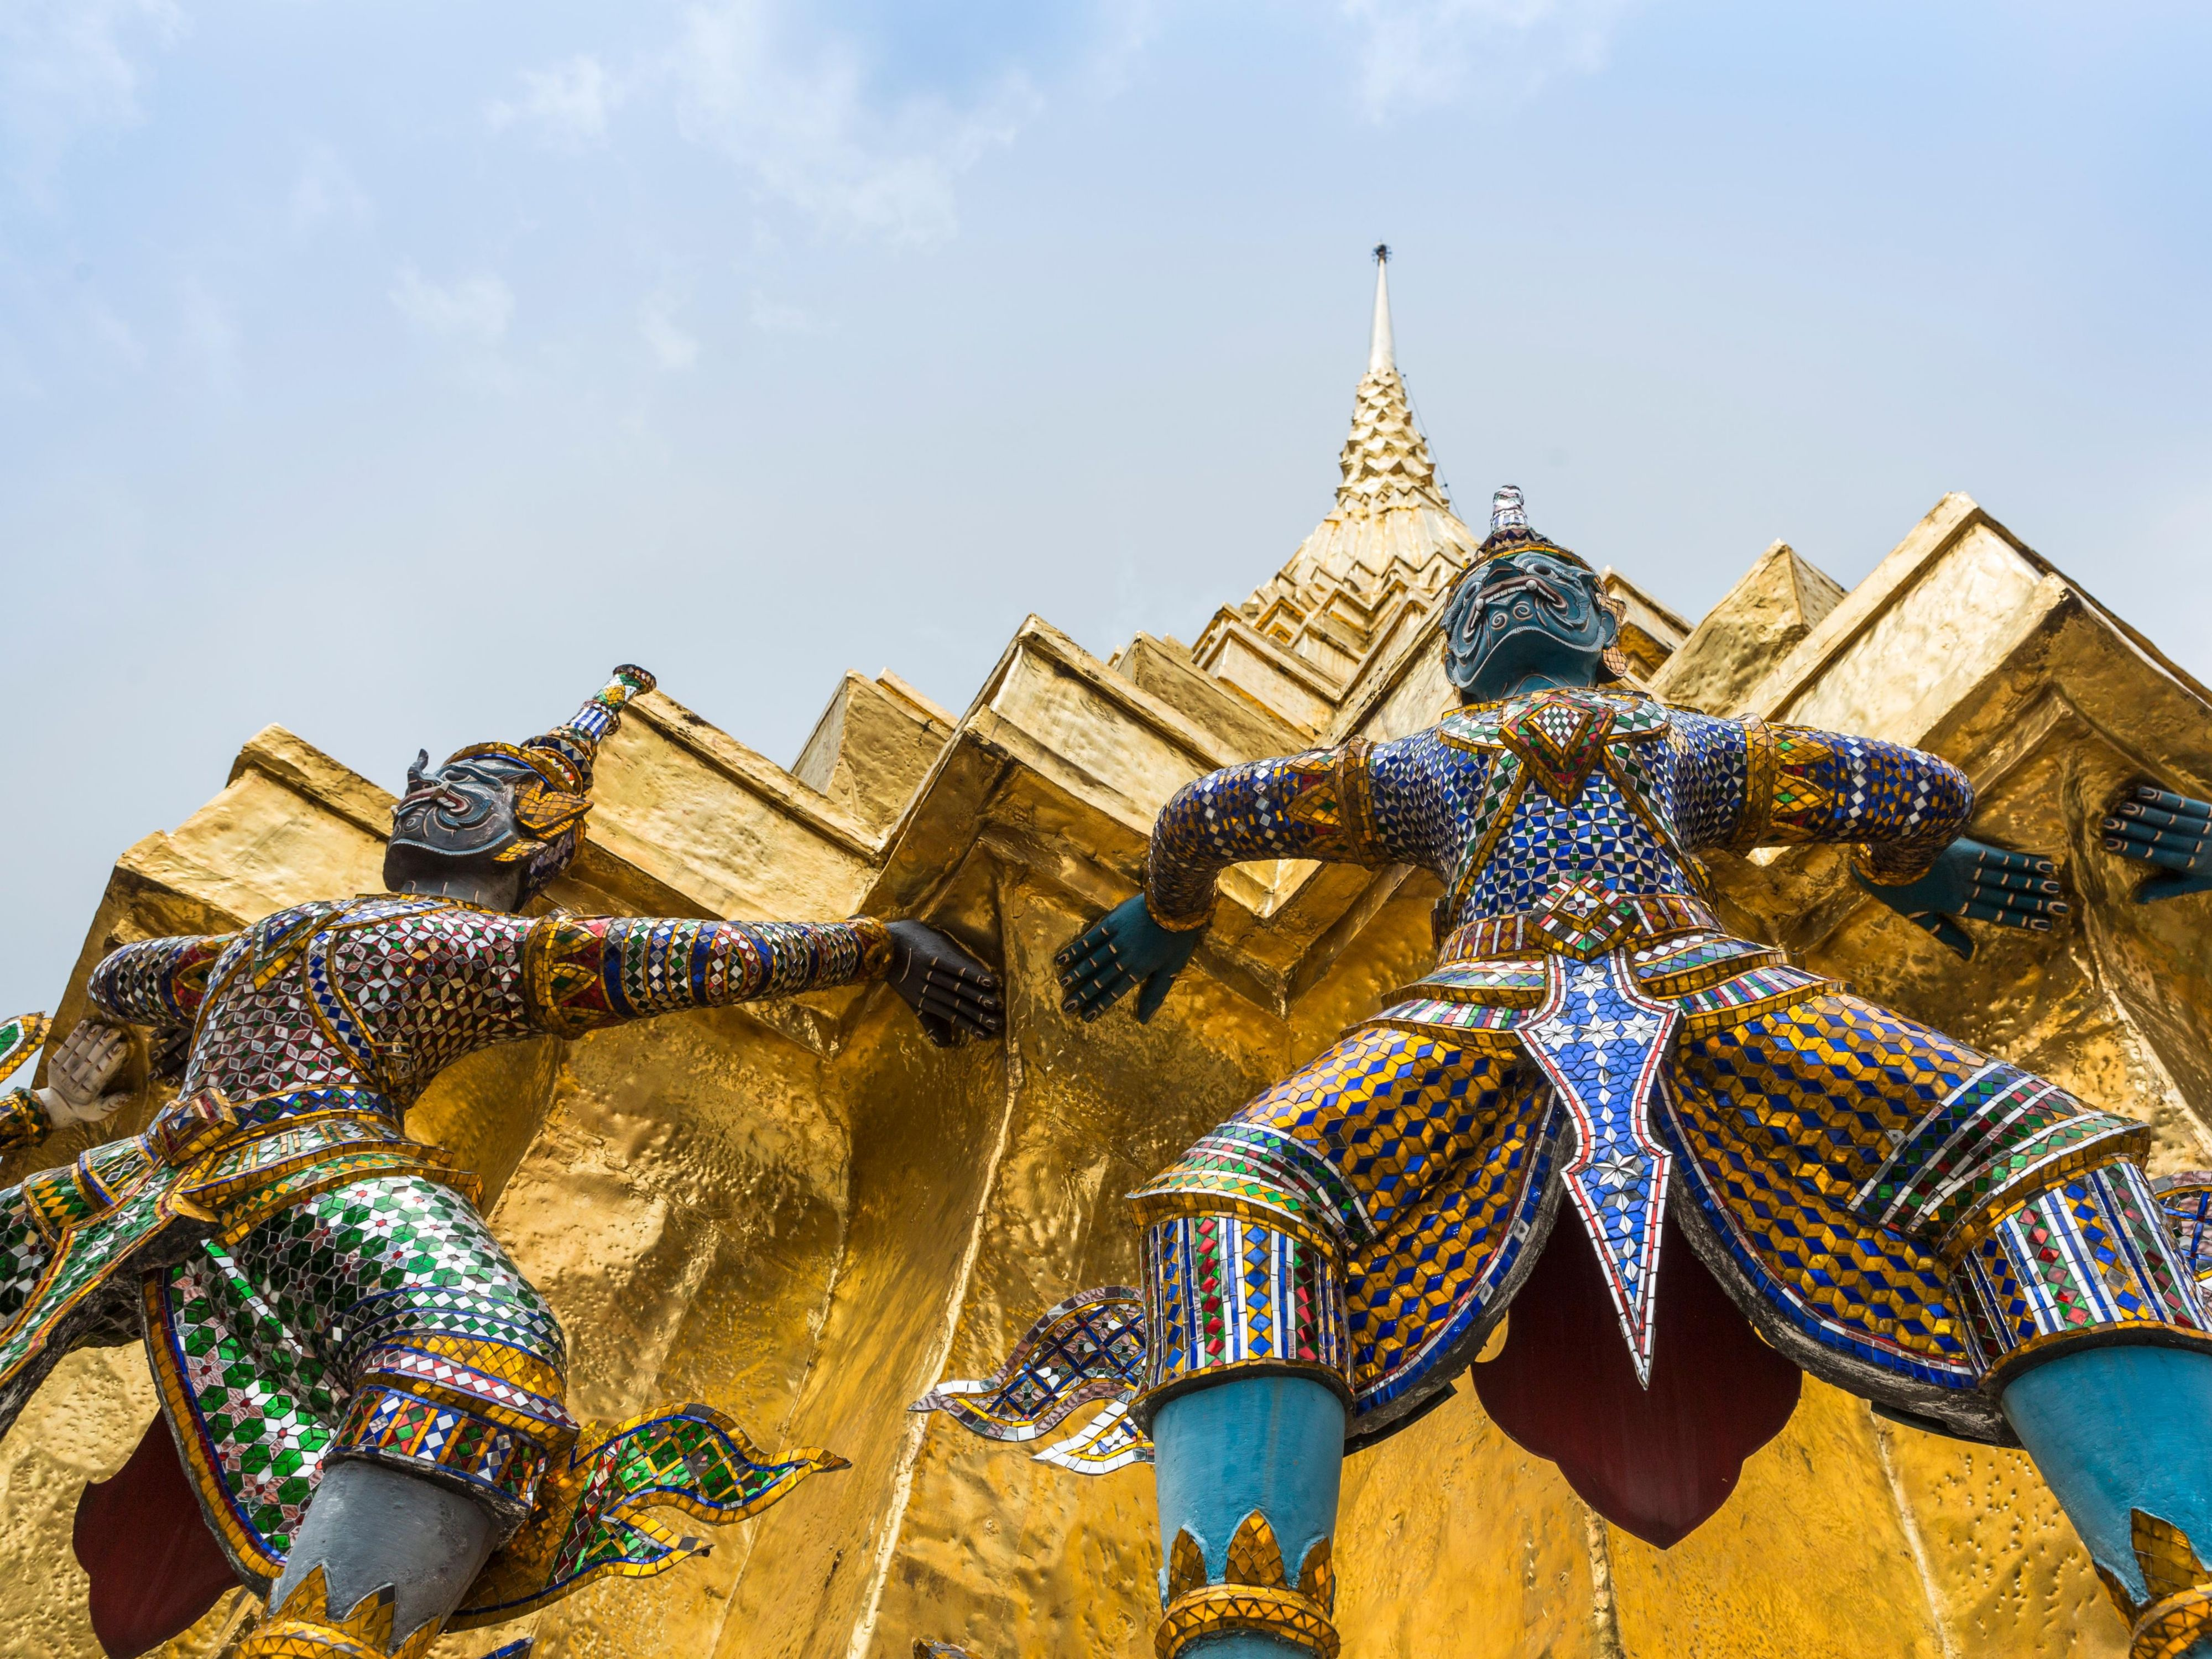 Attractions - Garuda decoration at Temple of the Emerald Buddha